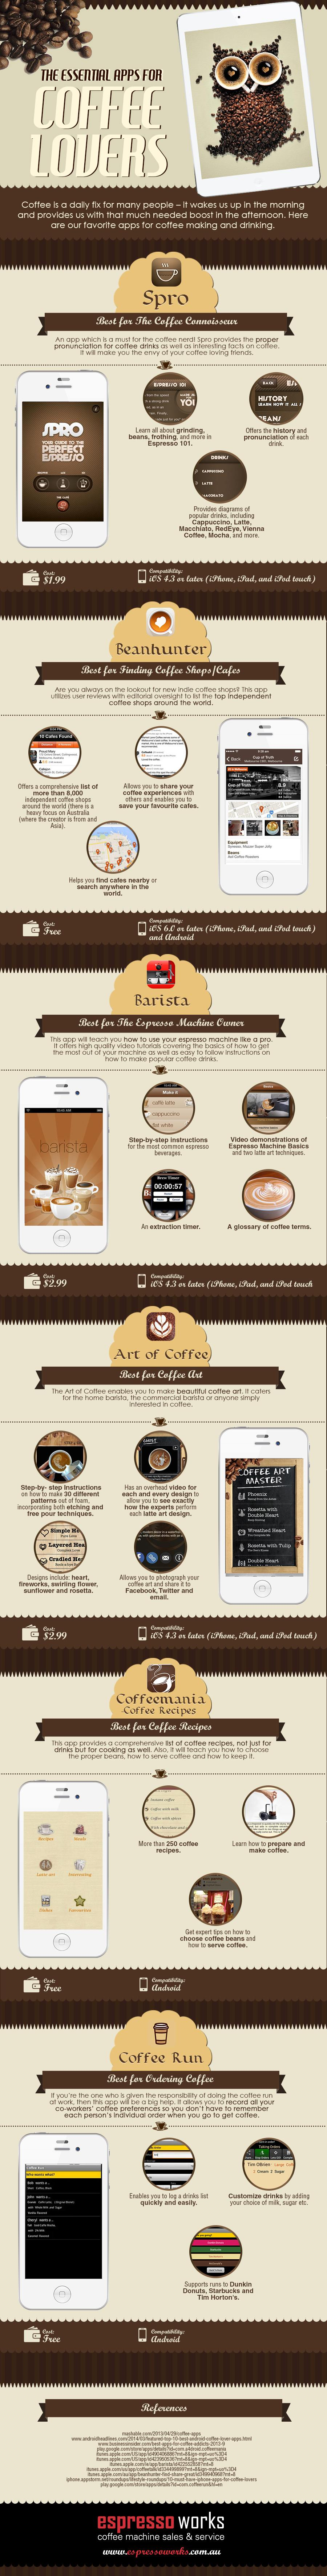 6 Essential iOS Apps & Free Essential Android Apps For Coffee Lovers - Infographic